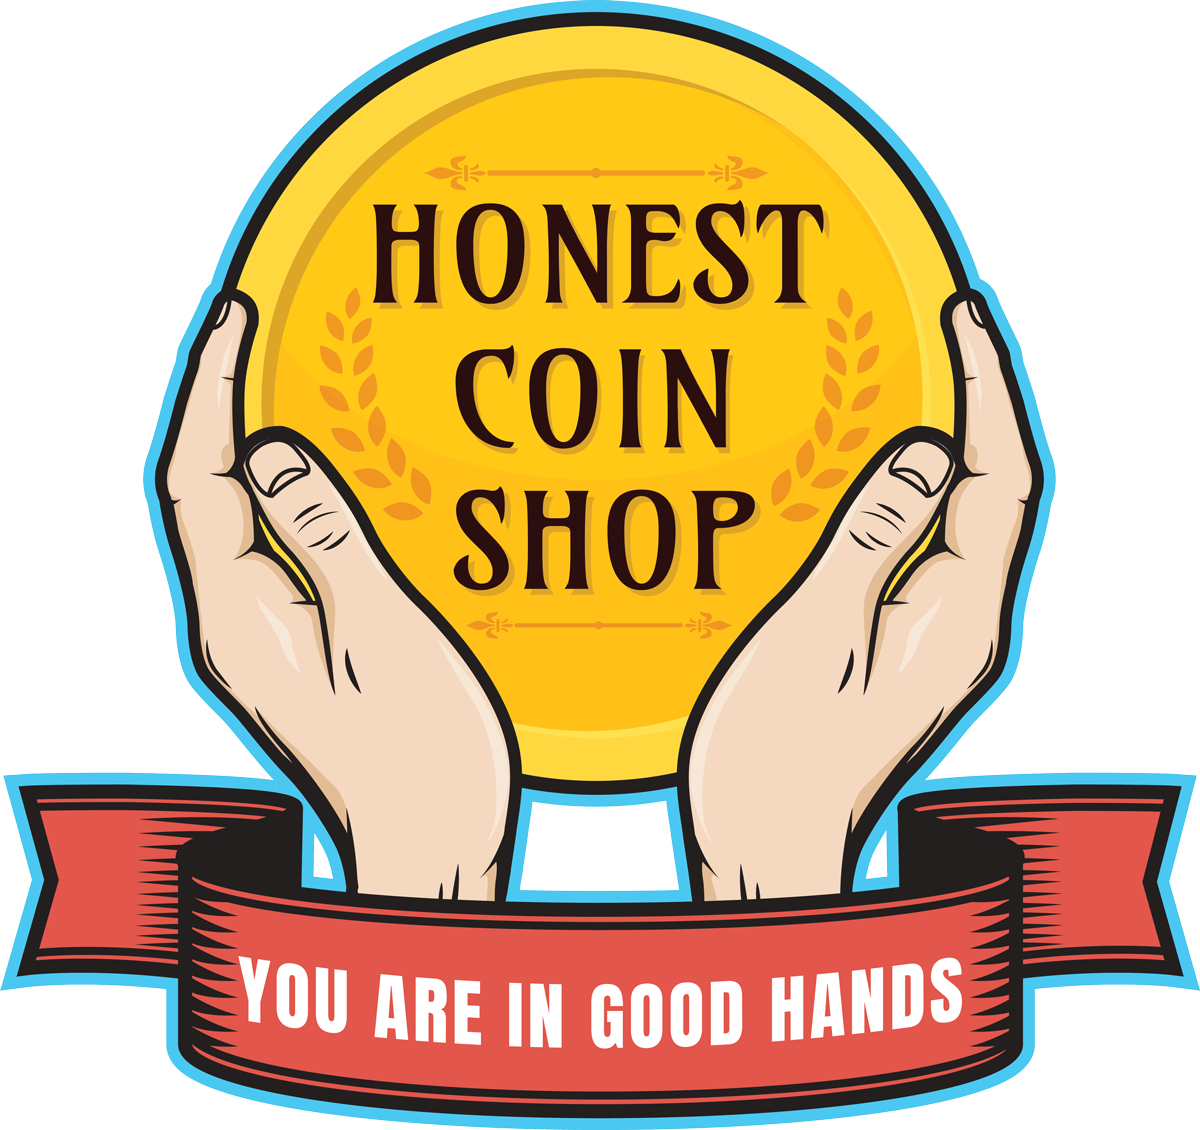 Coin clipart lucky penny. Questions and answers sell